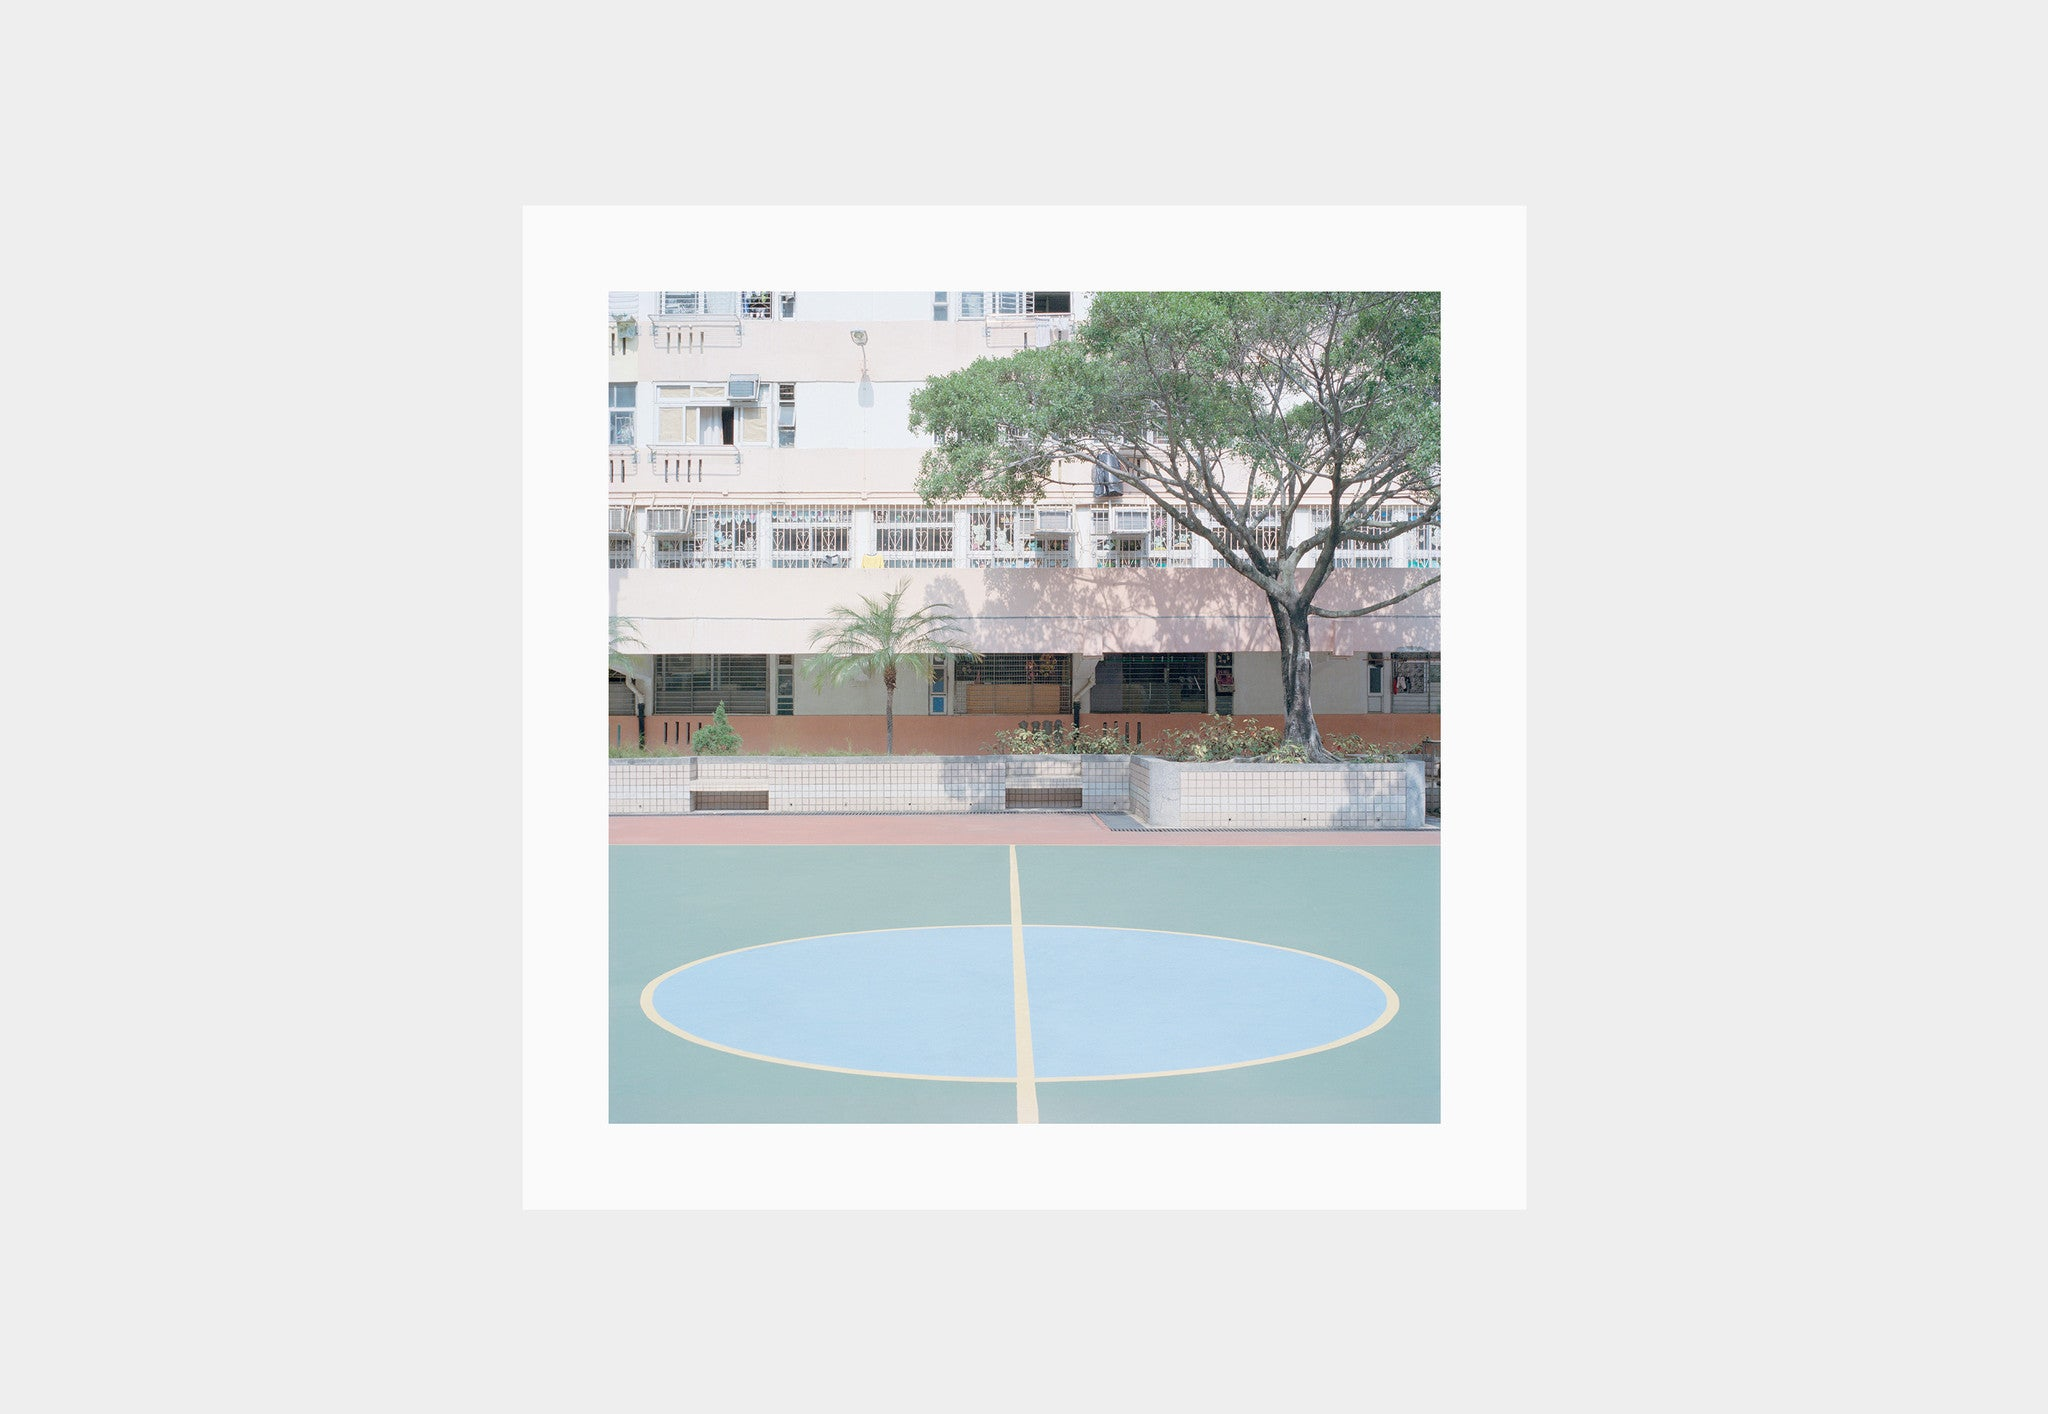 Courts 02 by Ward Roberts – Print 02 (Edition of 200)